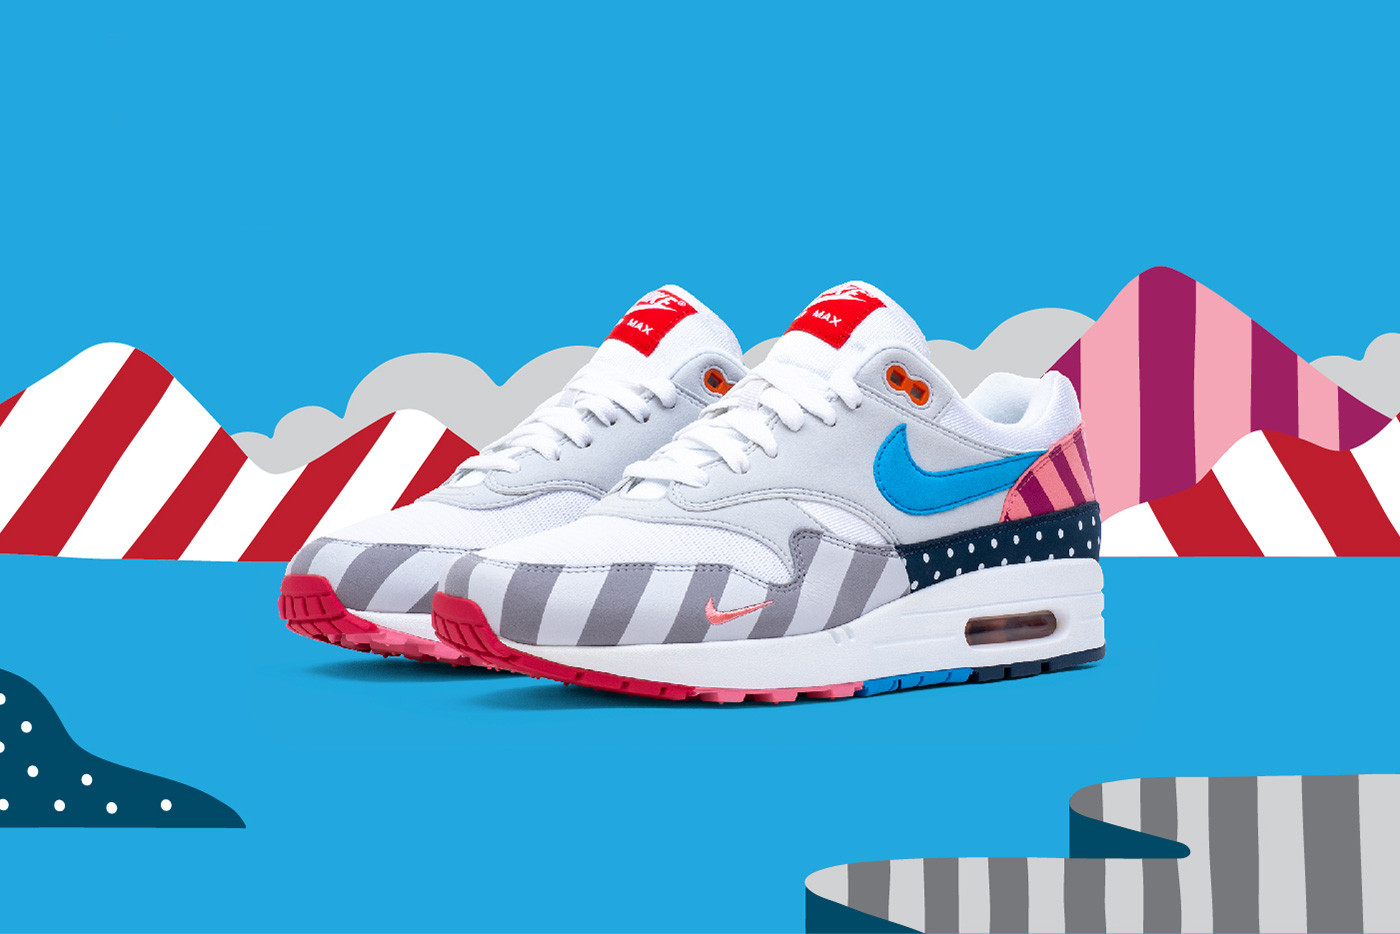 Parra Reconnects With Nike in This Week's Footwear Drops